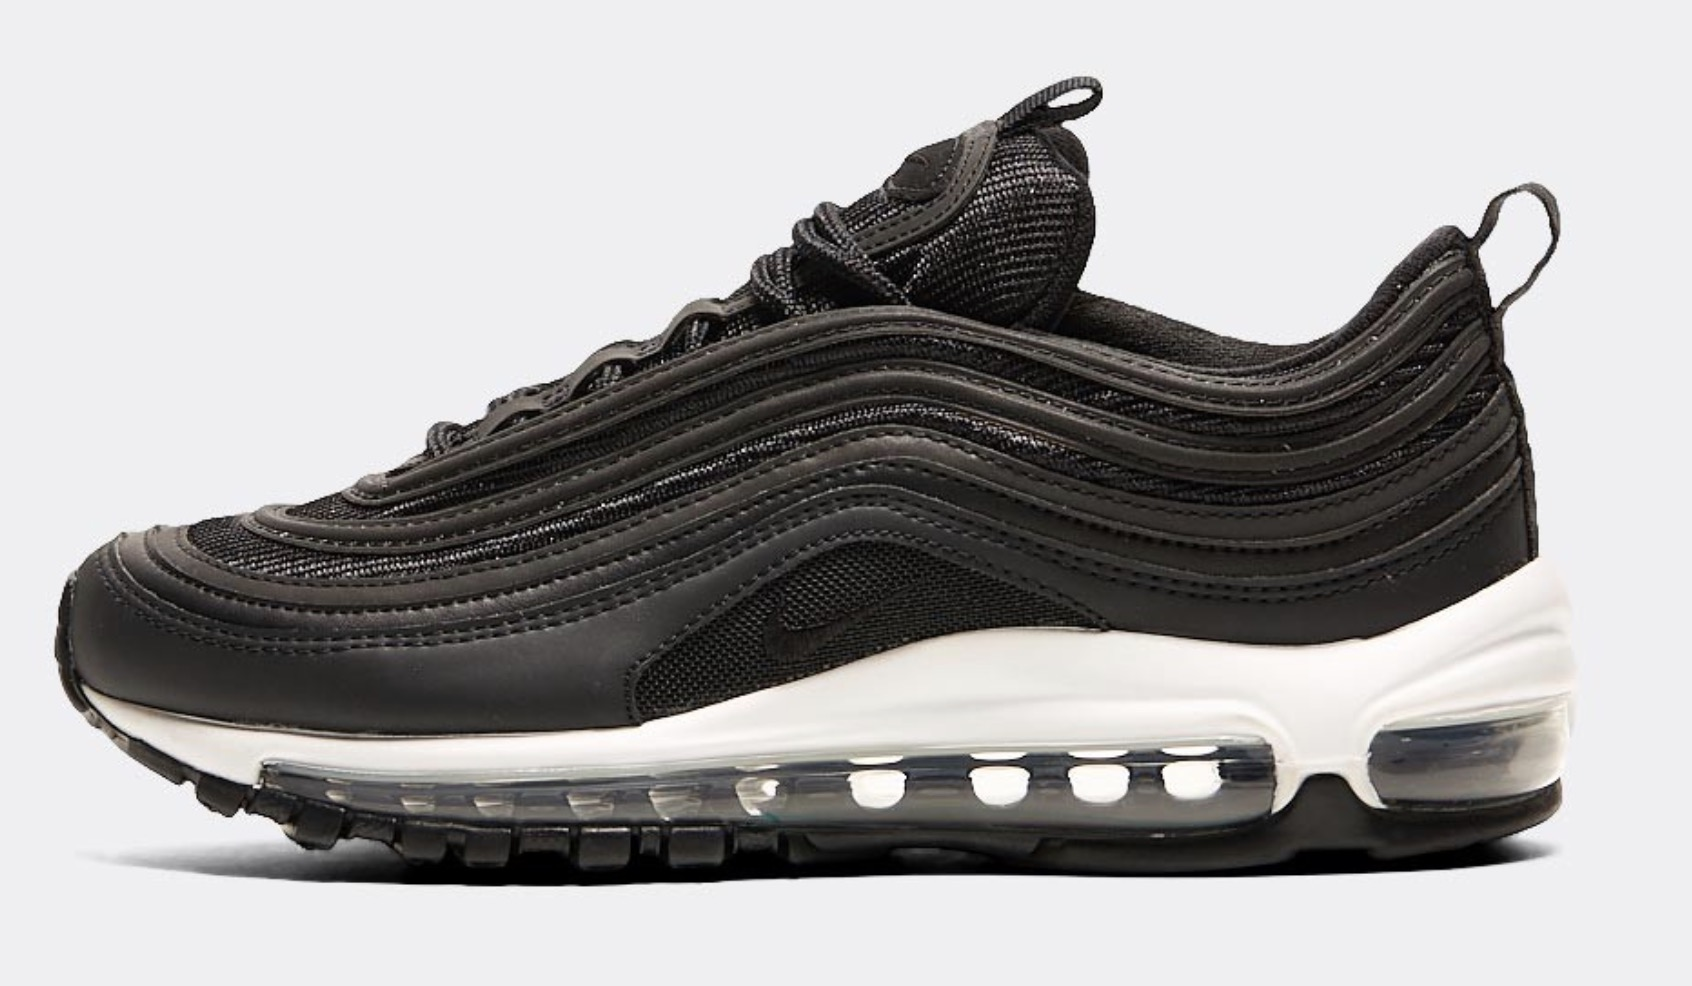 7 Air Max 97 S From Foot Asylum To Add To Your Everyday Rotation